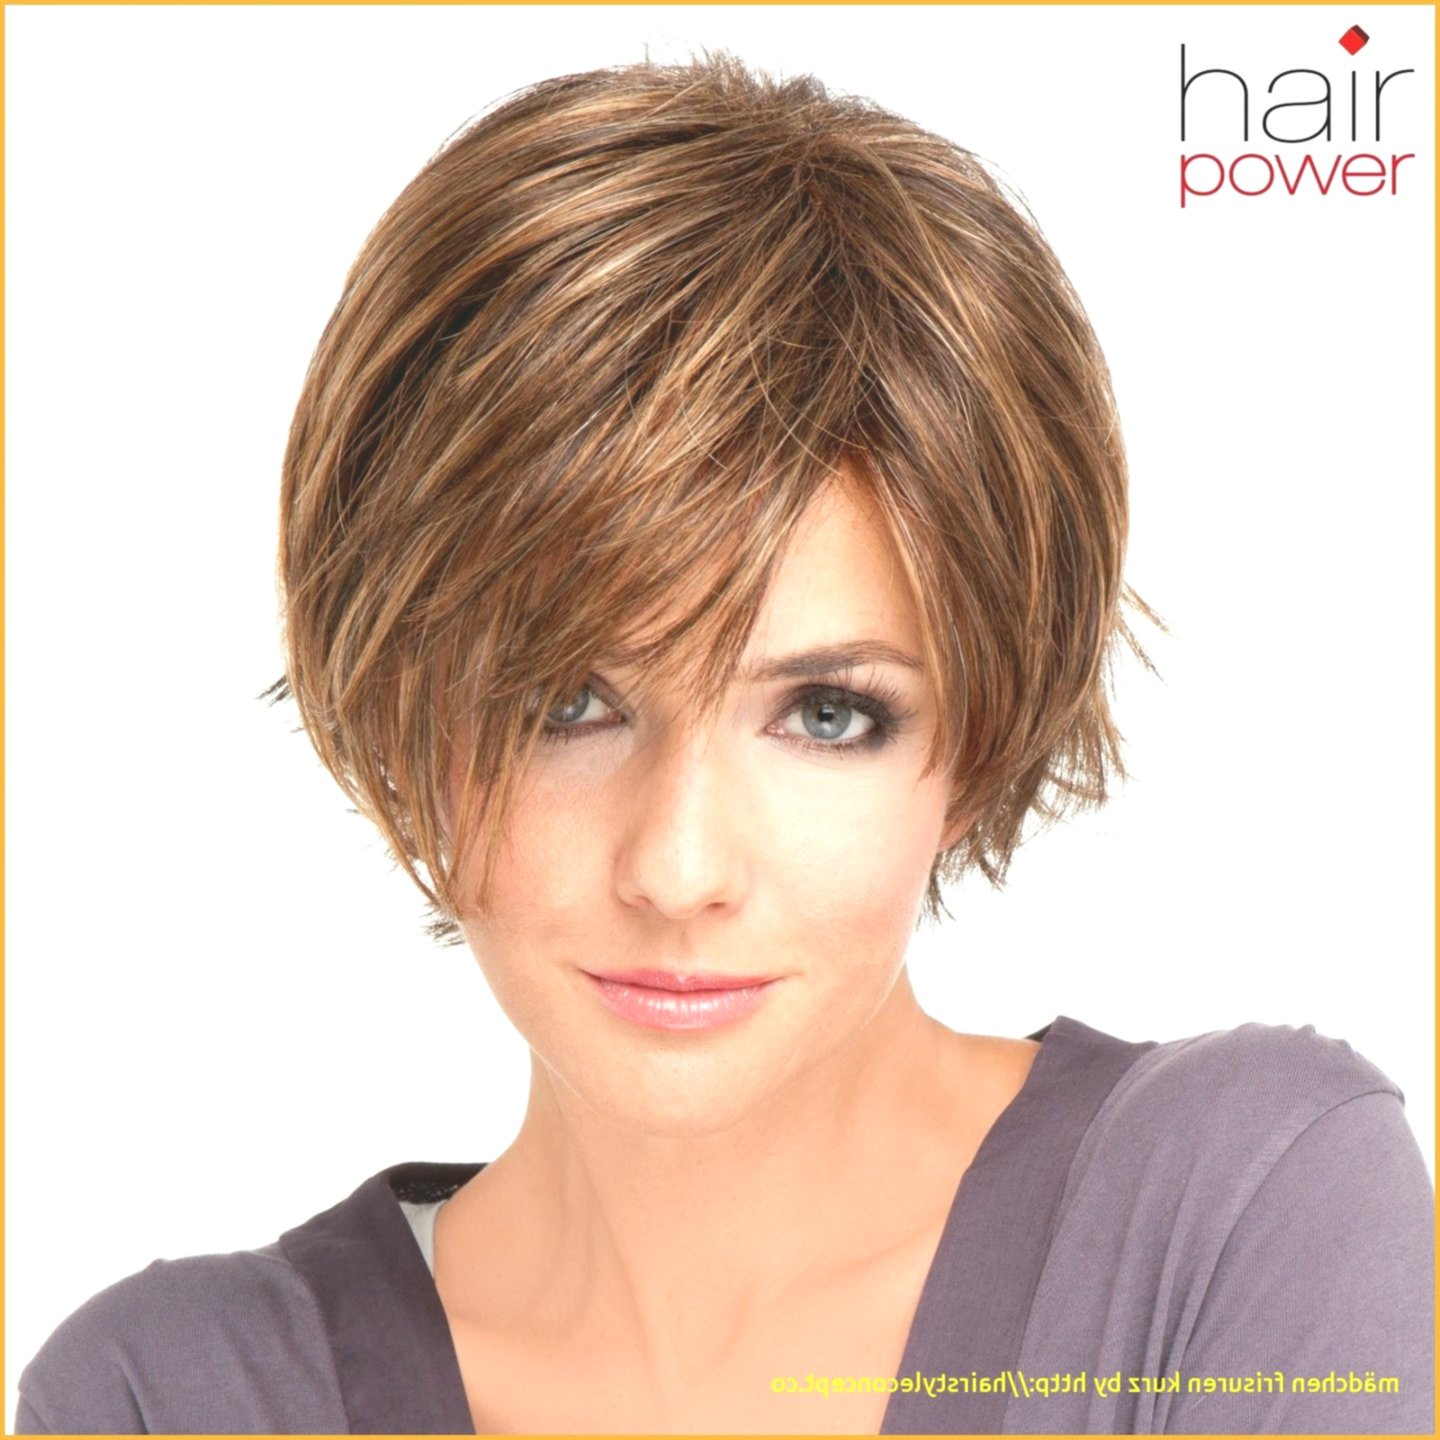 unique pictures short hairstyles design-new pictures Kurzhaarfrisuren Ideas